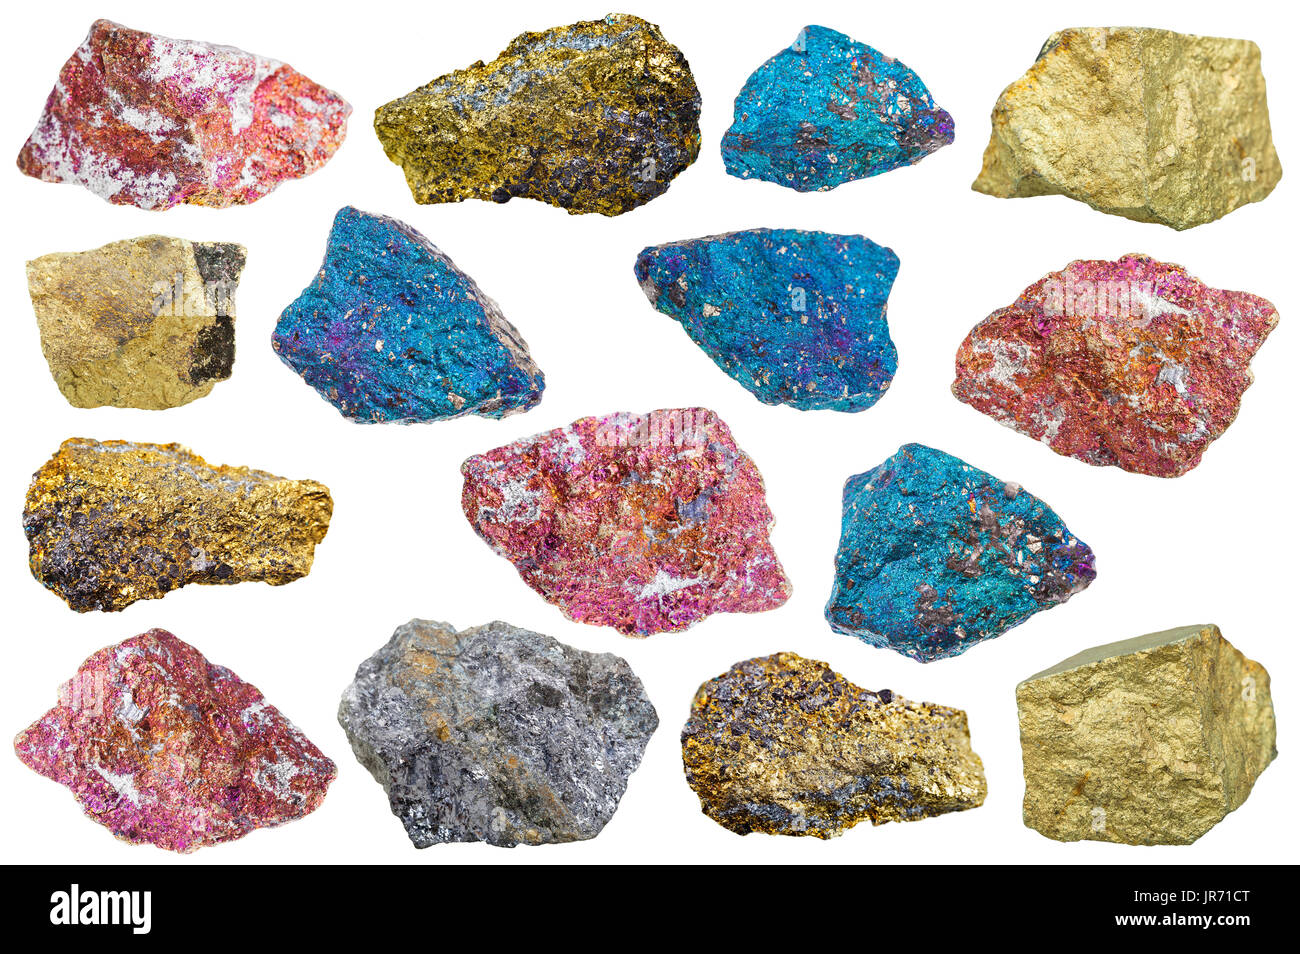 collection of various chalcopyrite (copper pyrite) rocks and minerals isolated on white background - Stock Image